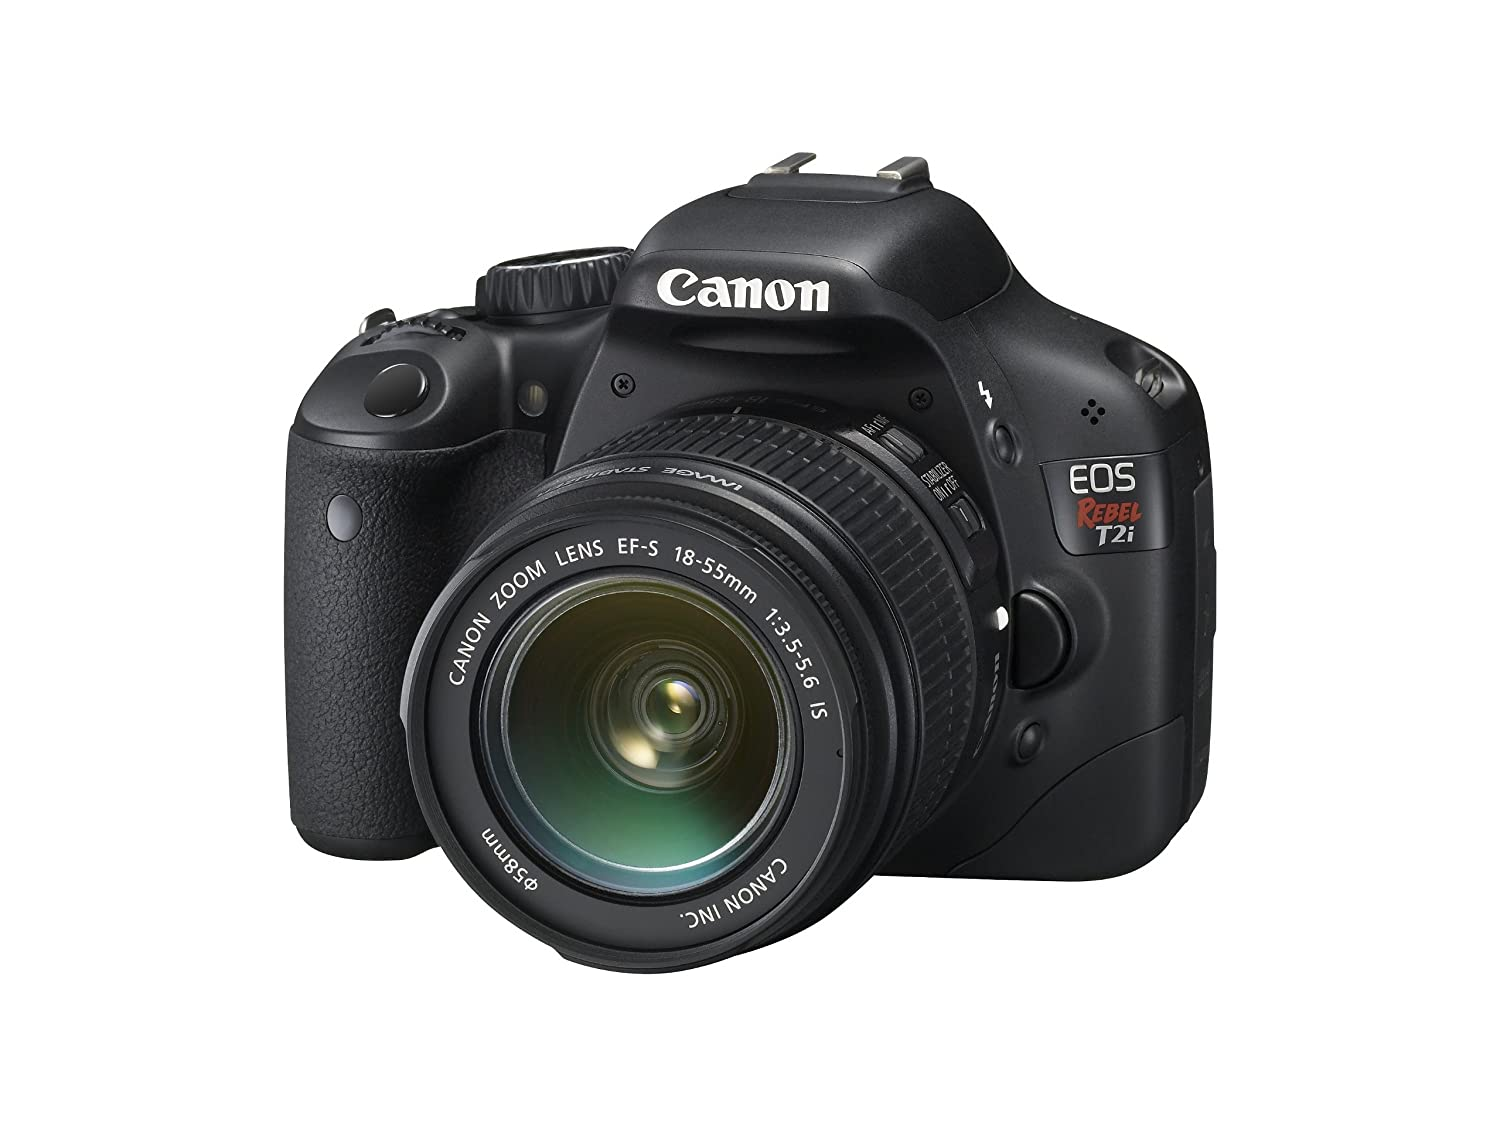 Camera Where Can I Sell My Dslr Camera amazon com canon eos rebel t2i dslr camera with ef s 18 55mm f f3 5 6 is lens old model tsi amp